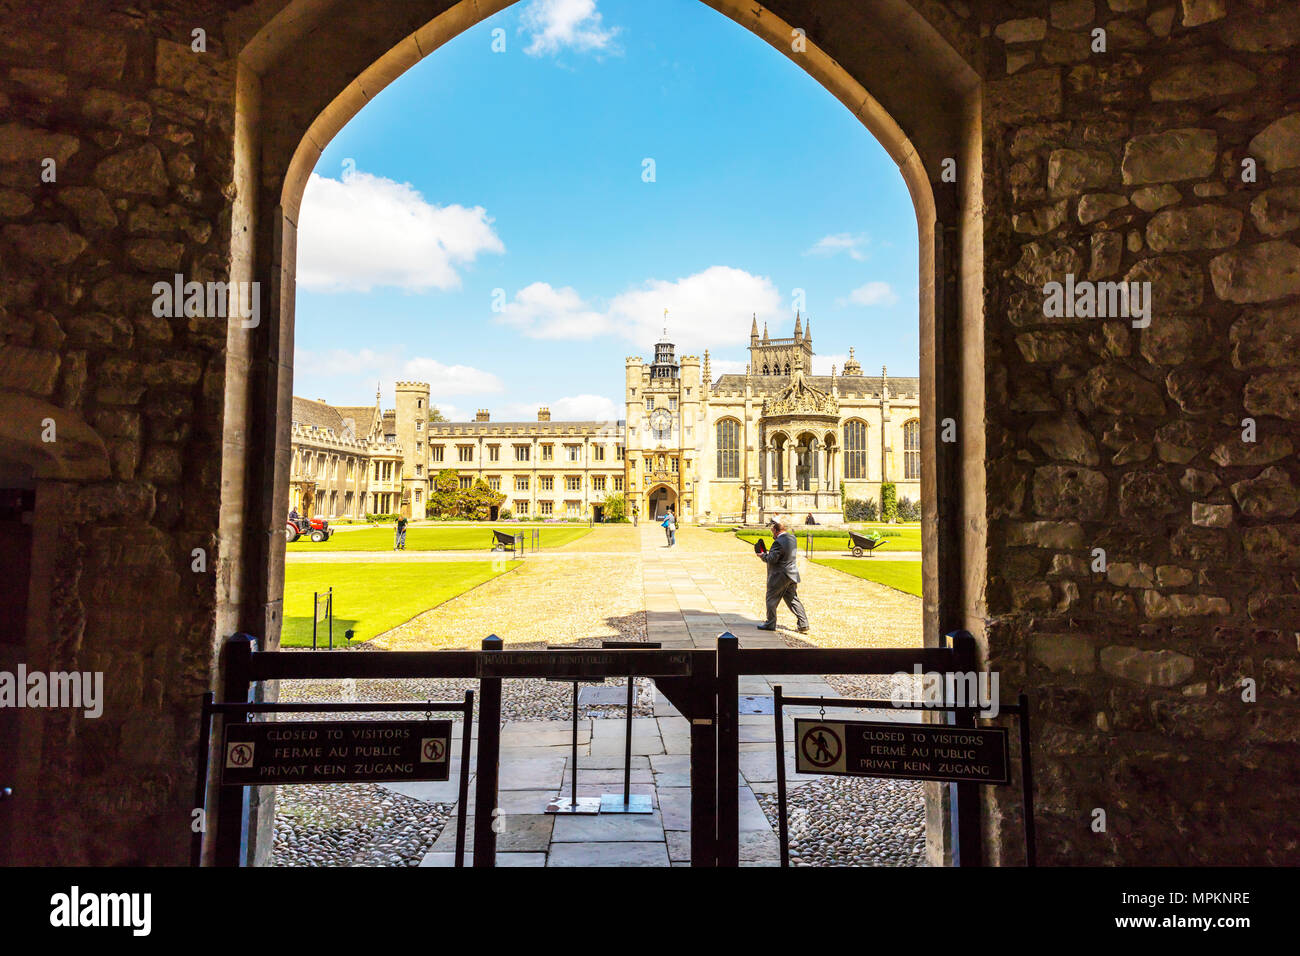 Cambridge trinity College UK, Trinity College is a constituent college of the University of Cambridge, trinity college Cambridge, trinity College uni - Stock Image